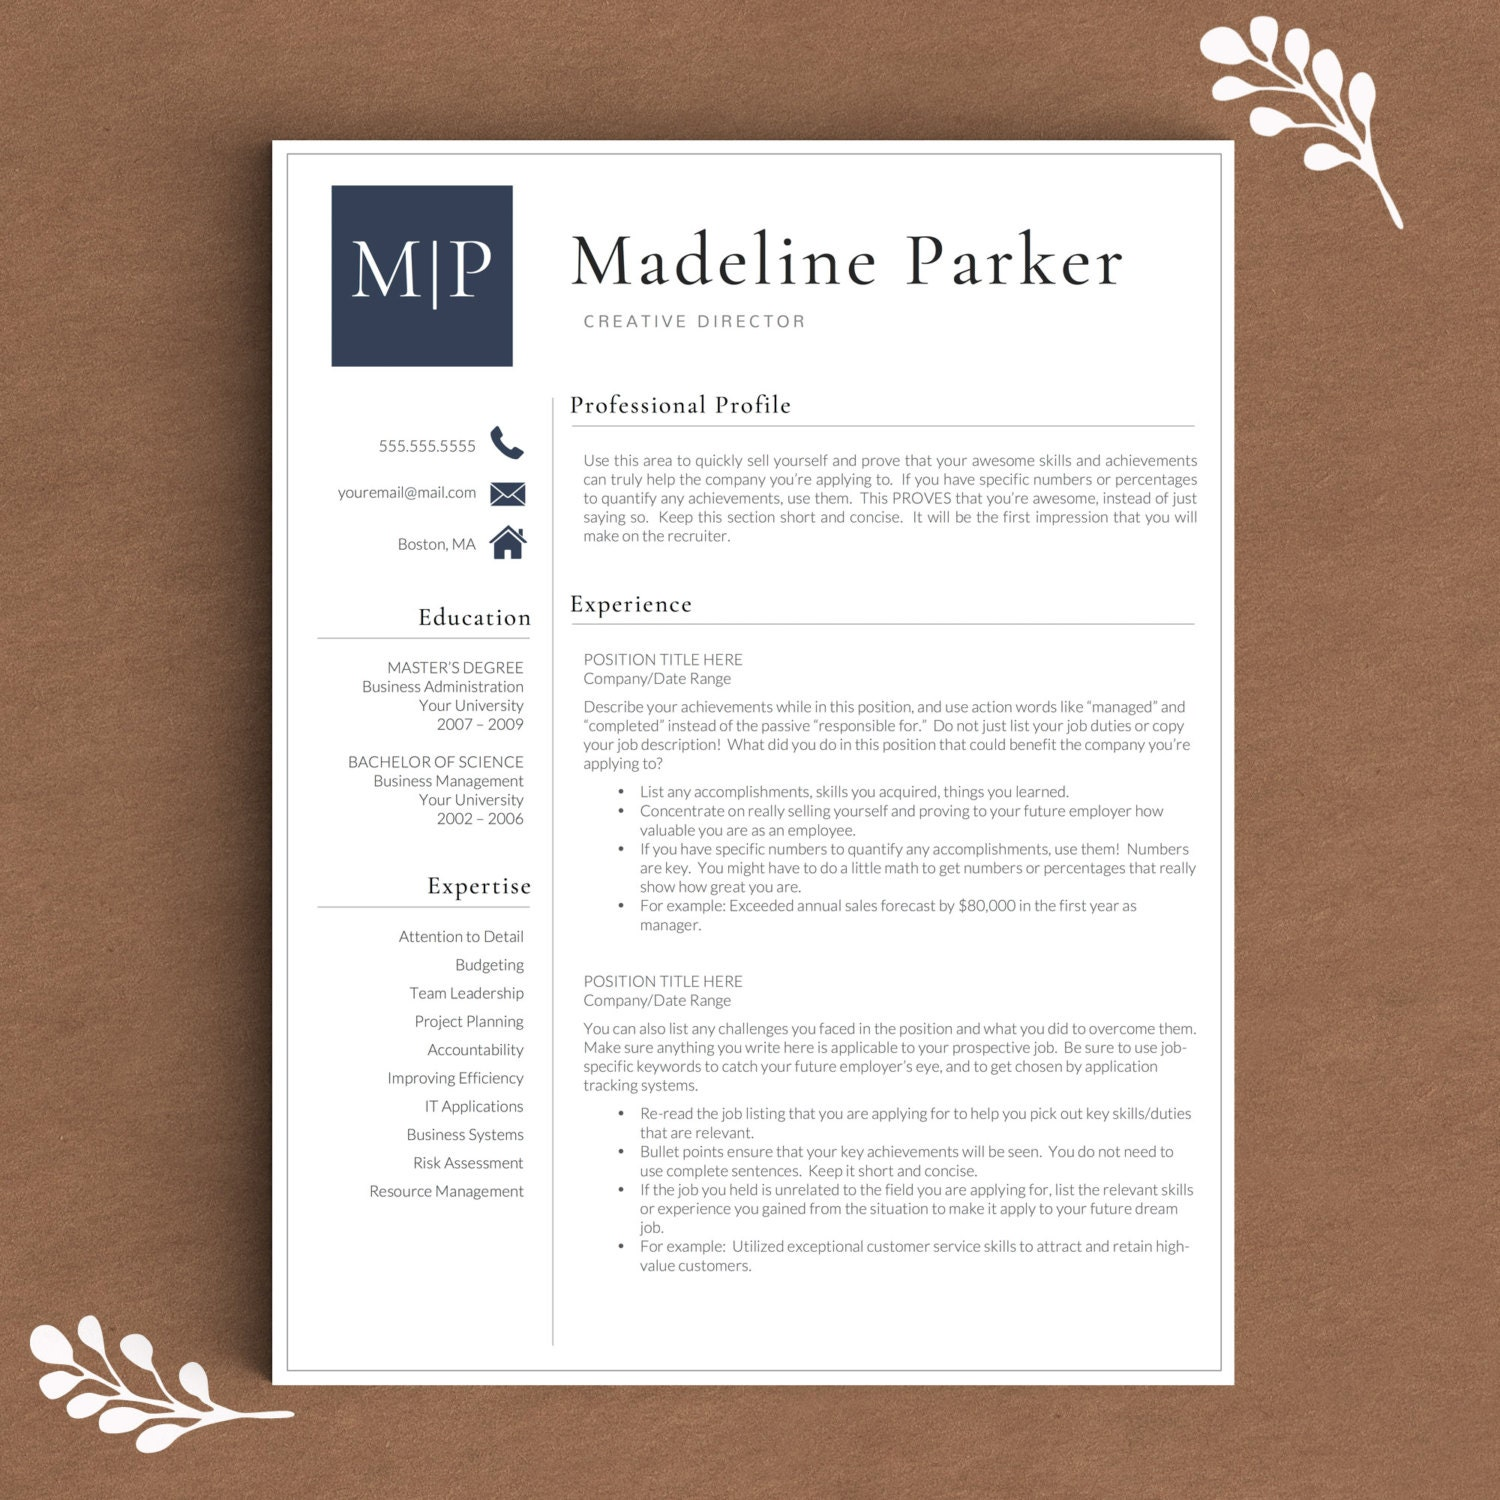 Professional Resume Template Microsoft Word: Professional Resume Template For Word & Pages By